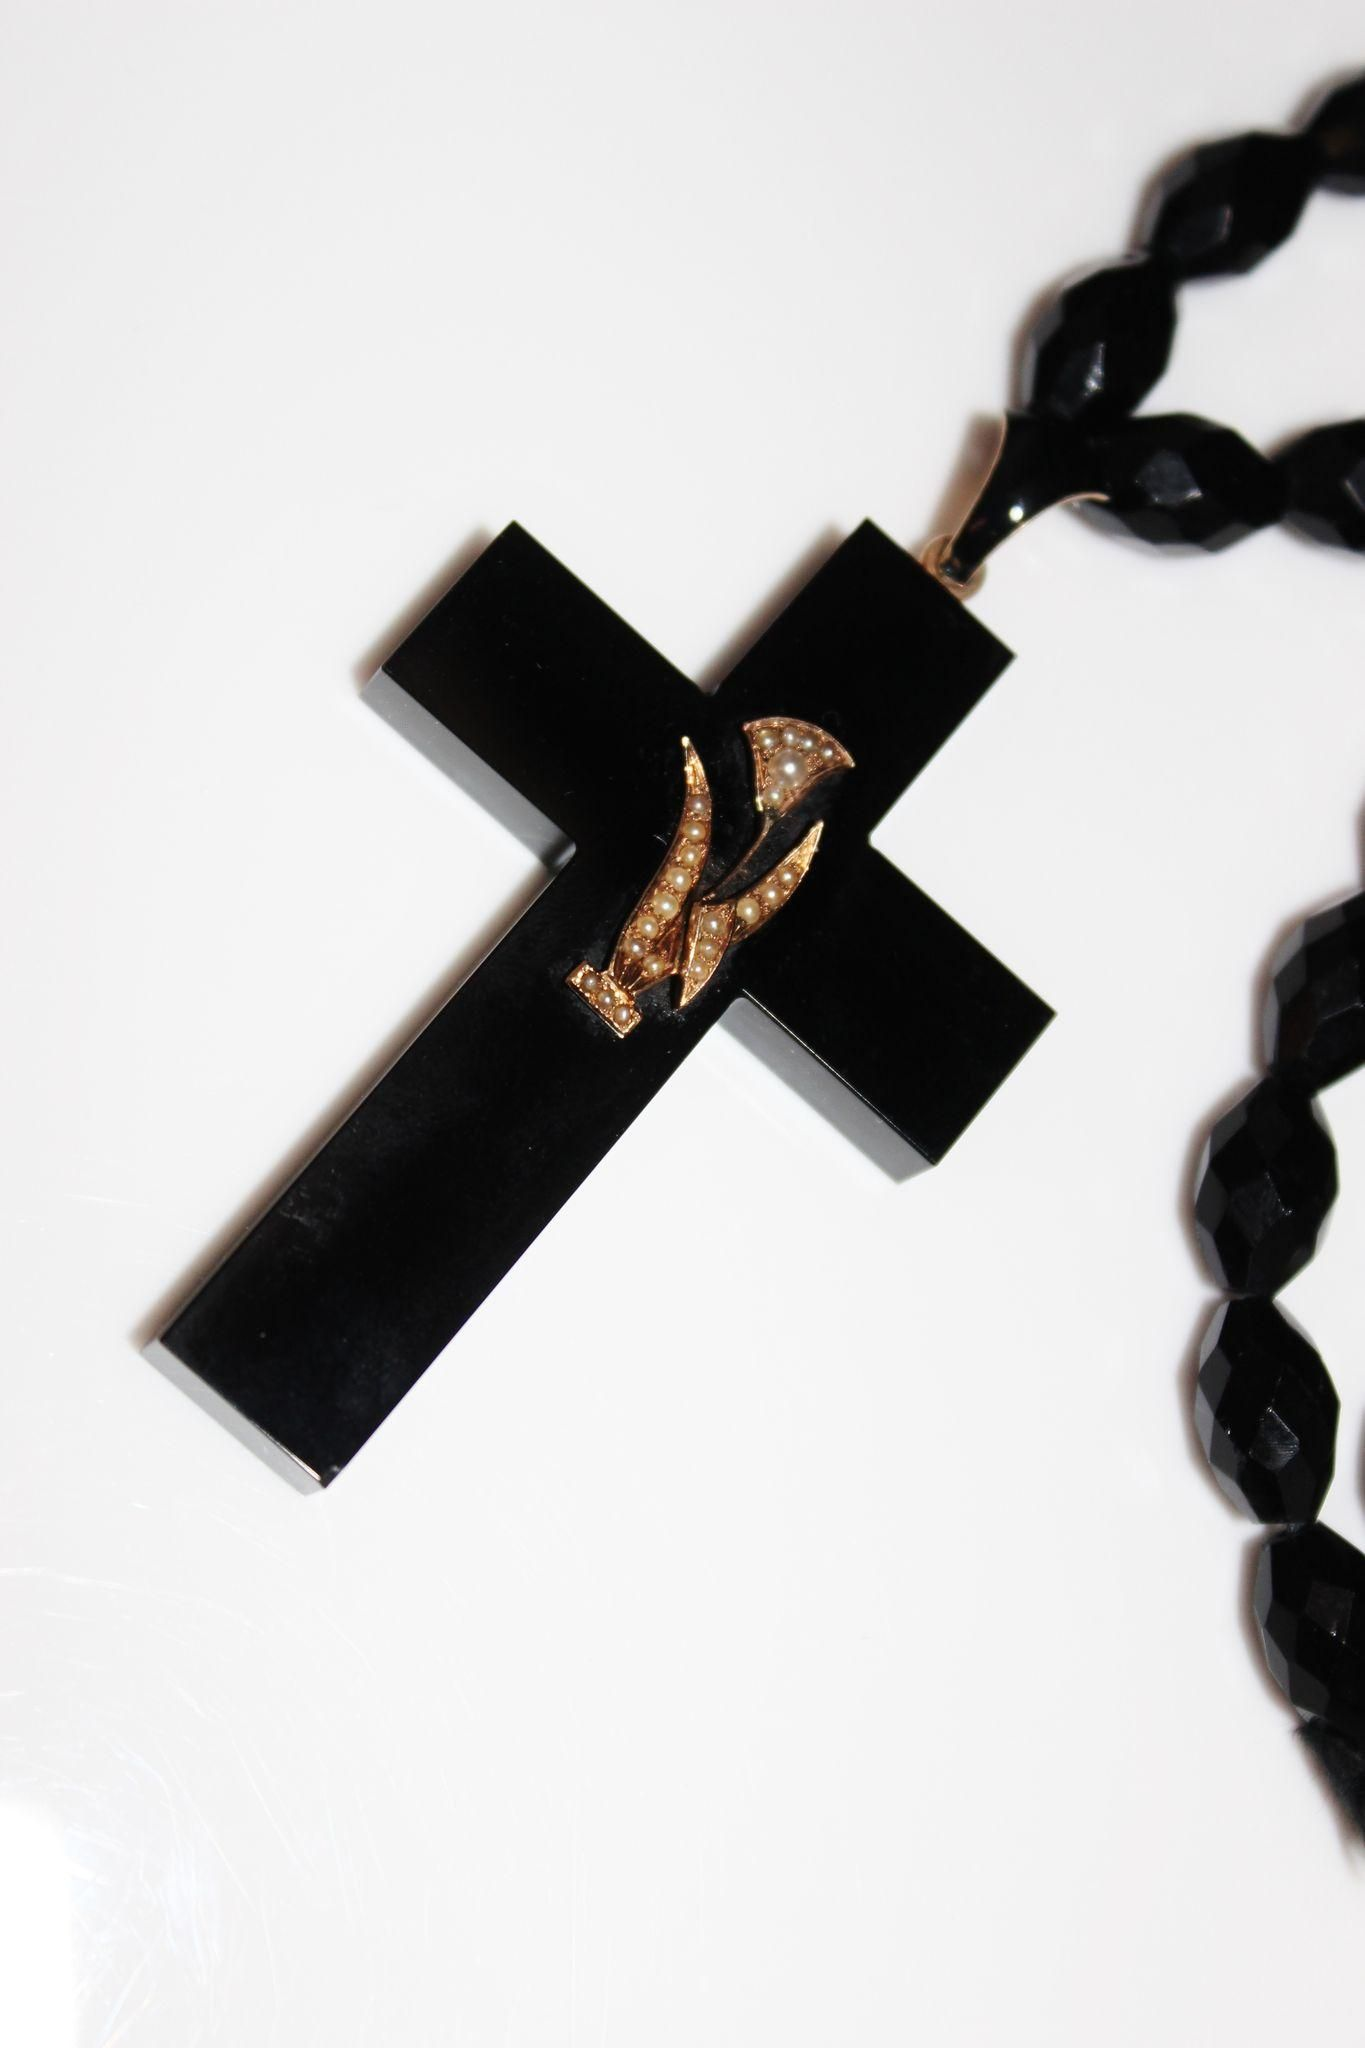 Antique victorian mourning onyx cross necklace 14k lily flower antique victorian mourning onyx cross necklace 14k lily flower jet beads 52 aloadofball Images